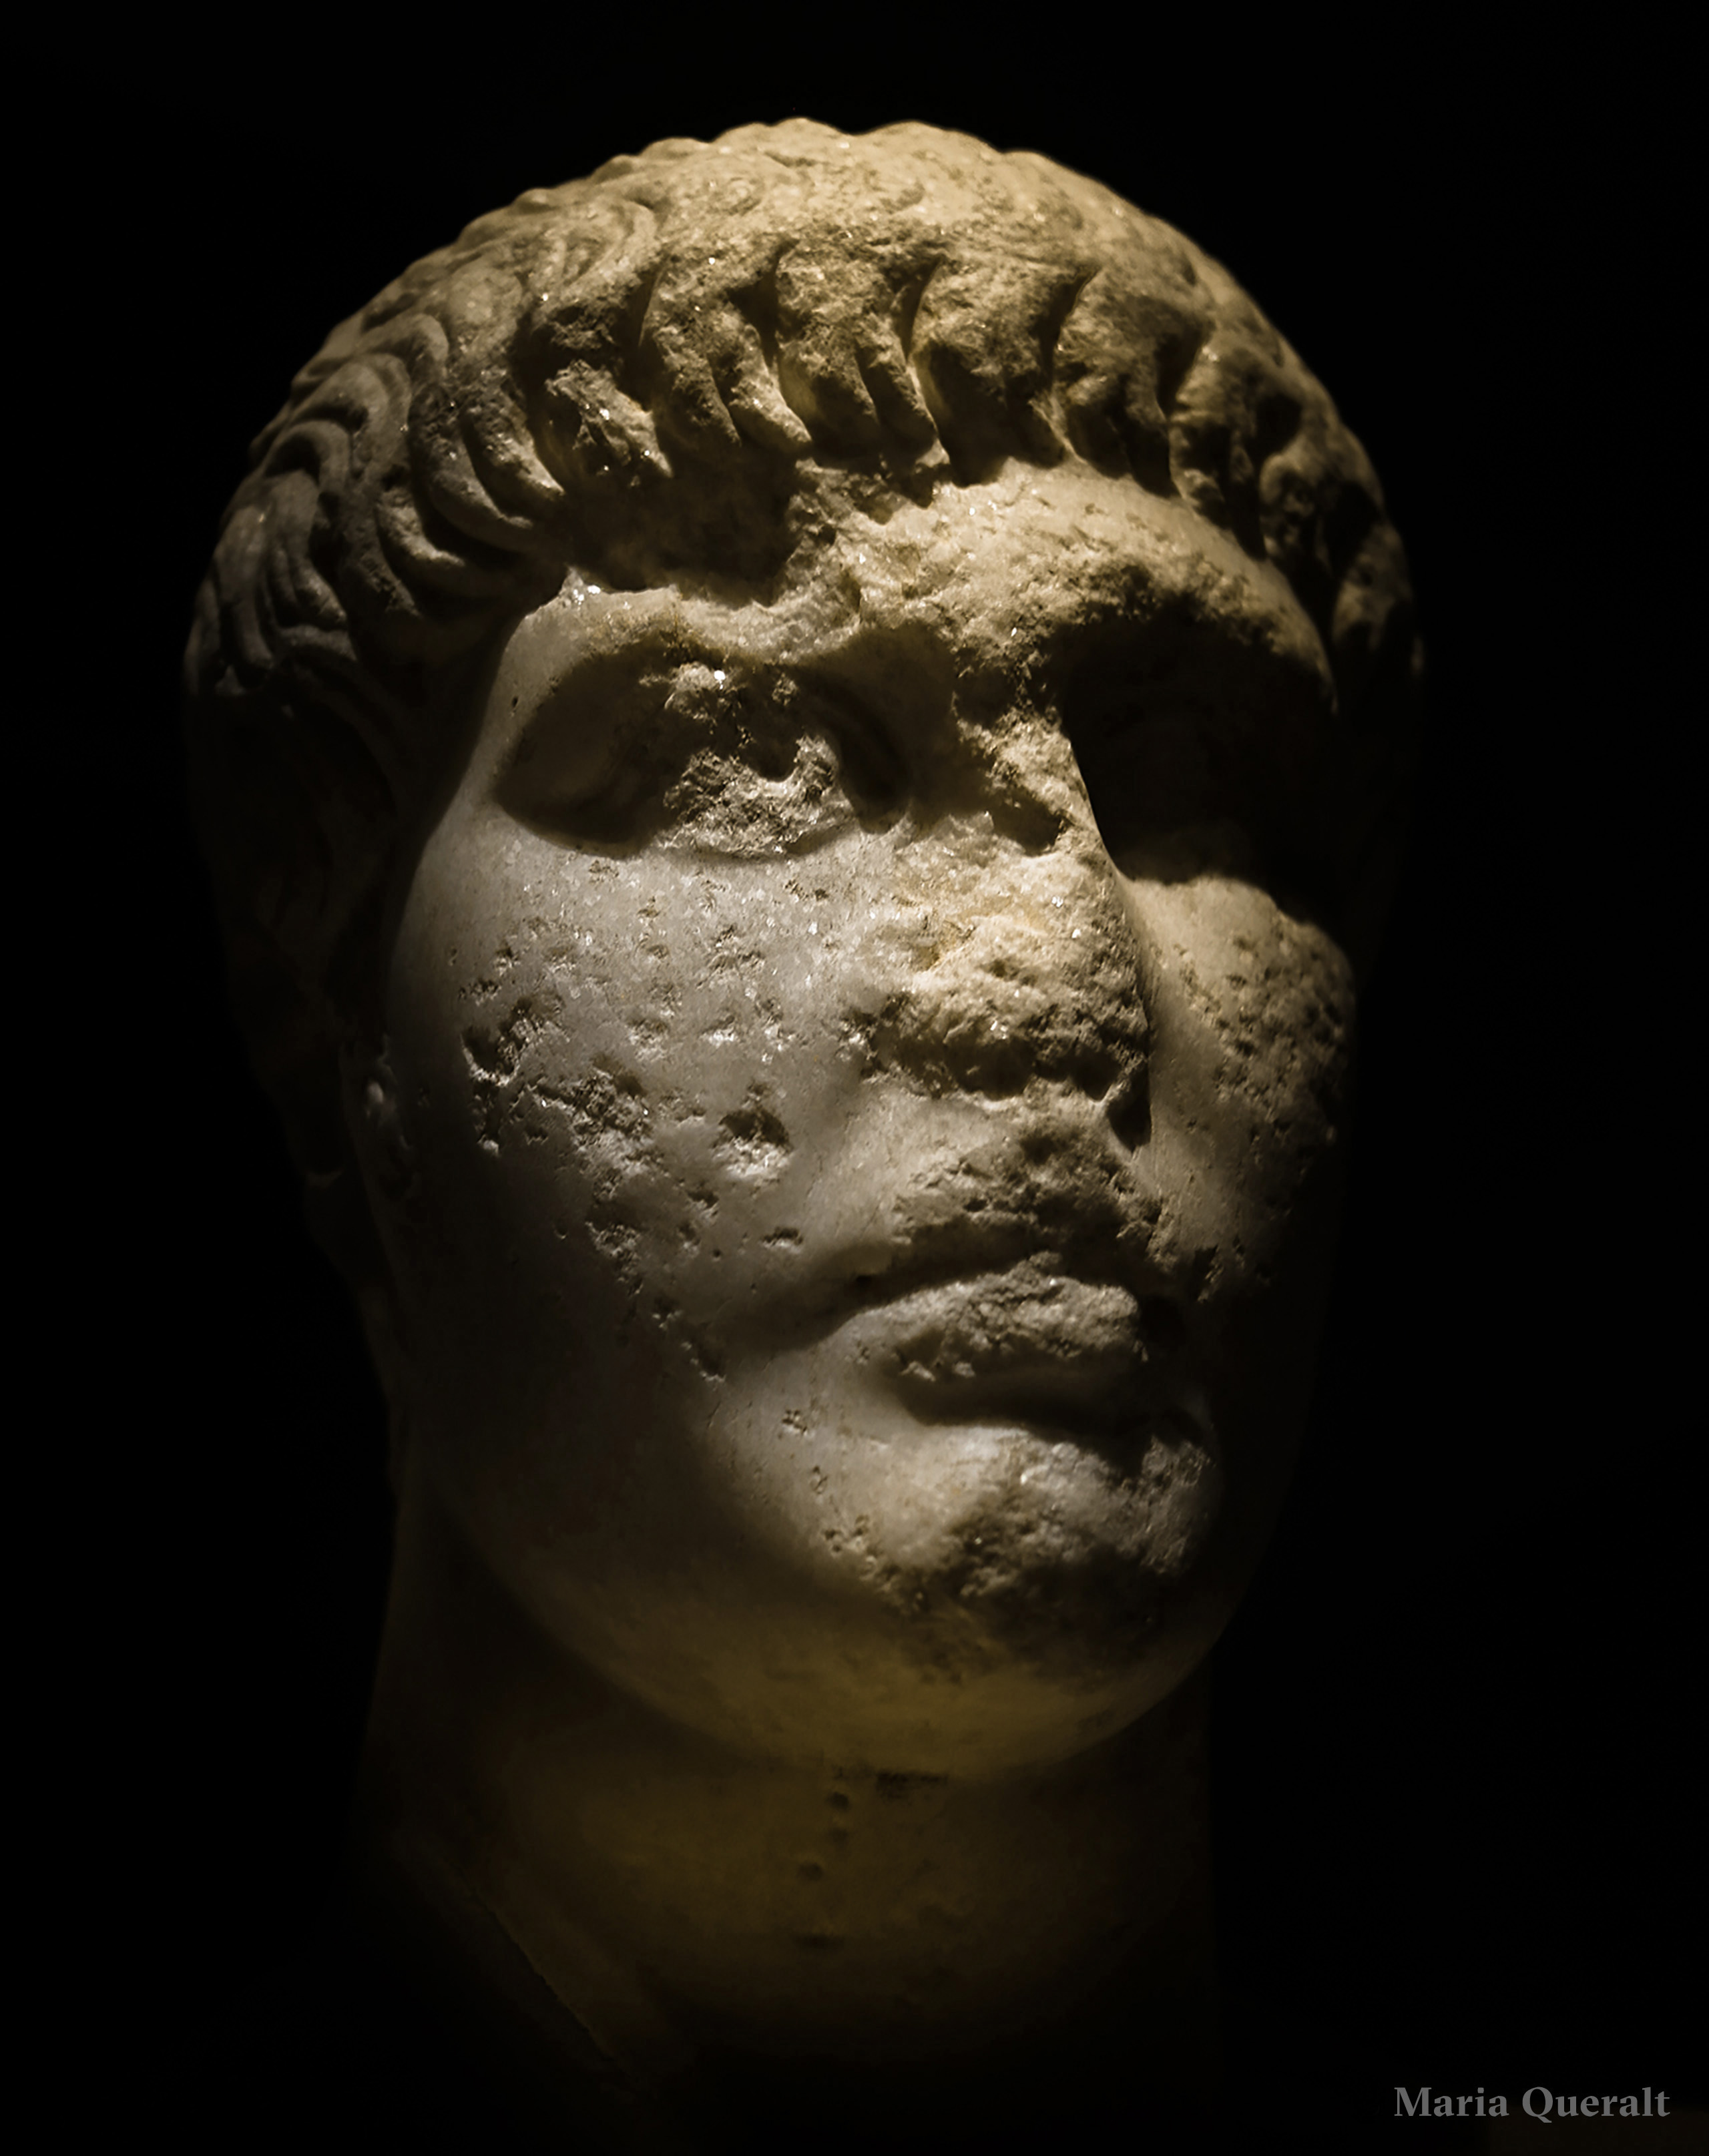 Digital art work of the marble sculpture of roman emperor Domitian, Caesar Augusta, Museo Provincial de Zaragoza, Spain. Photography, concept, design and retouch by Maria Queralt